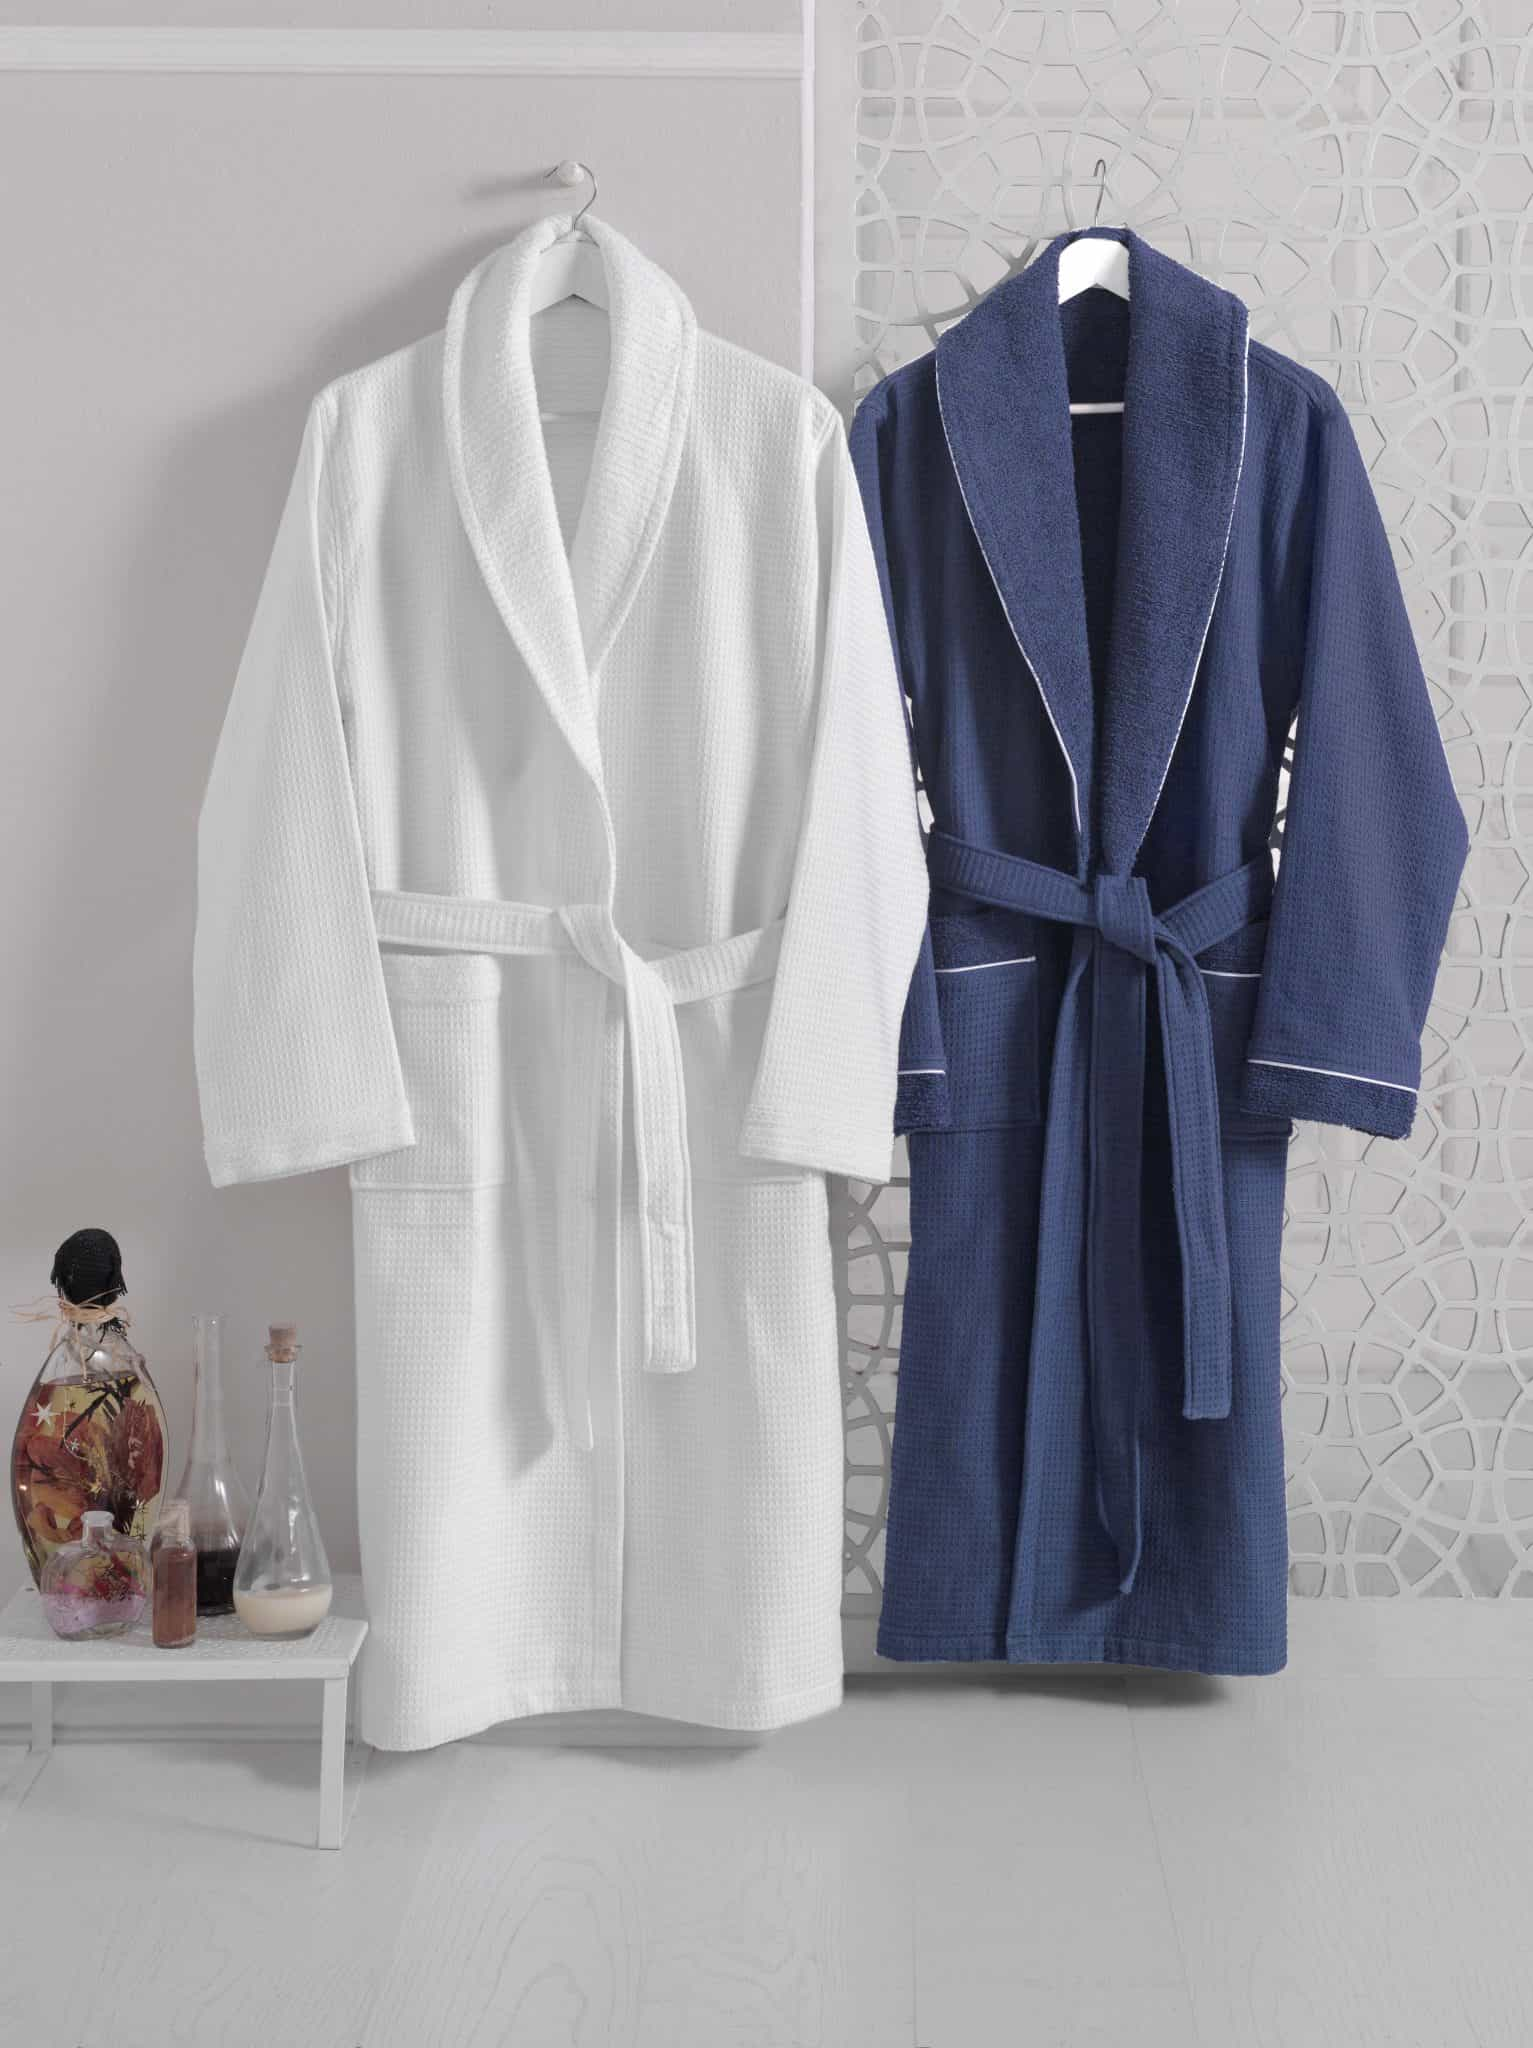 10 Essential Things to Consider When Buying a Bathrobe